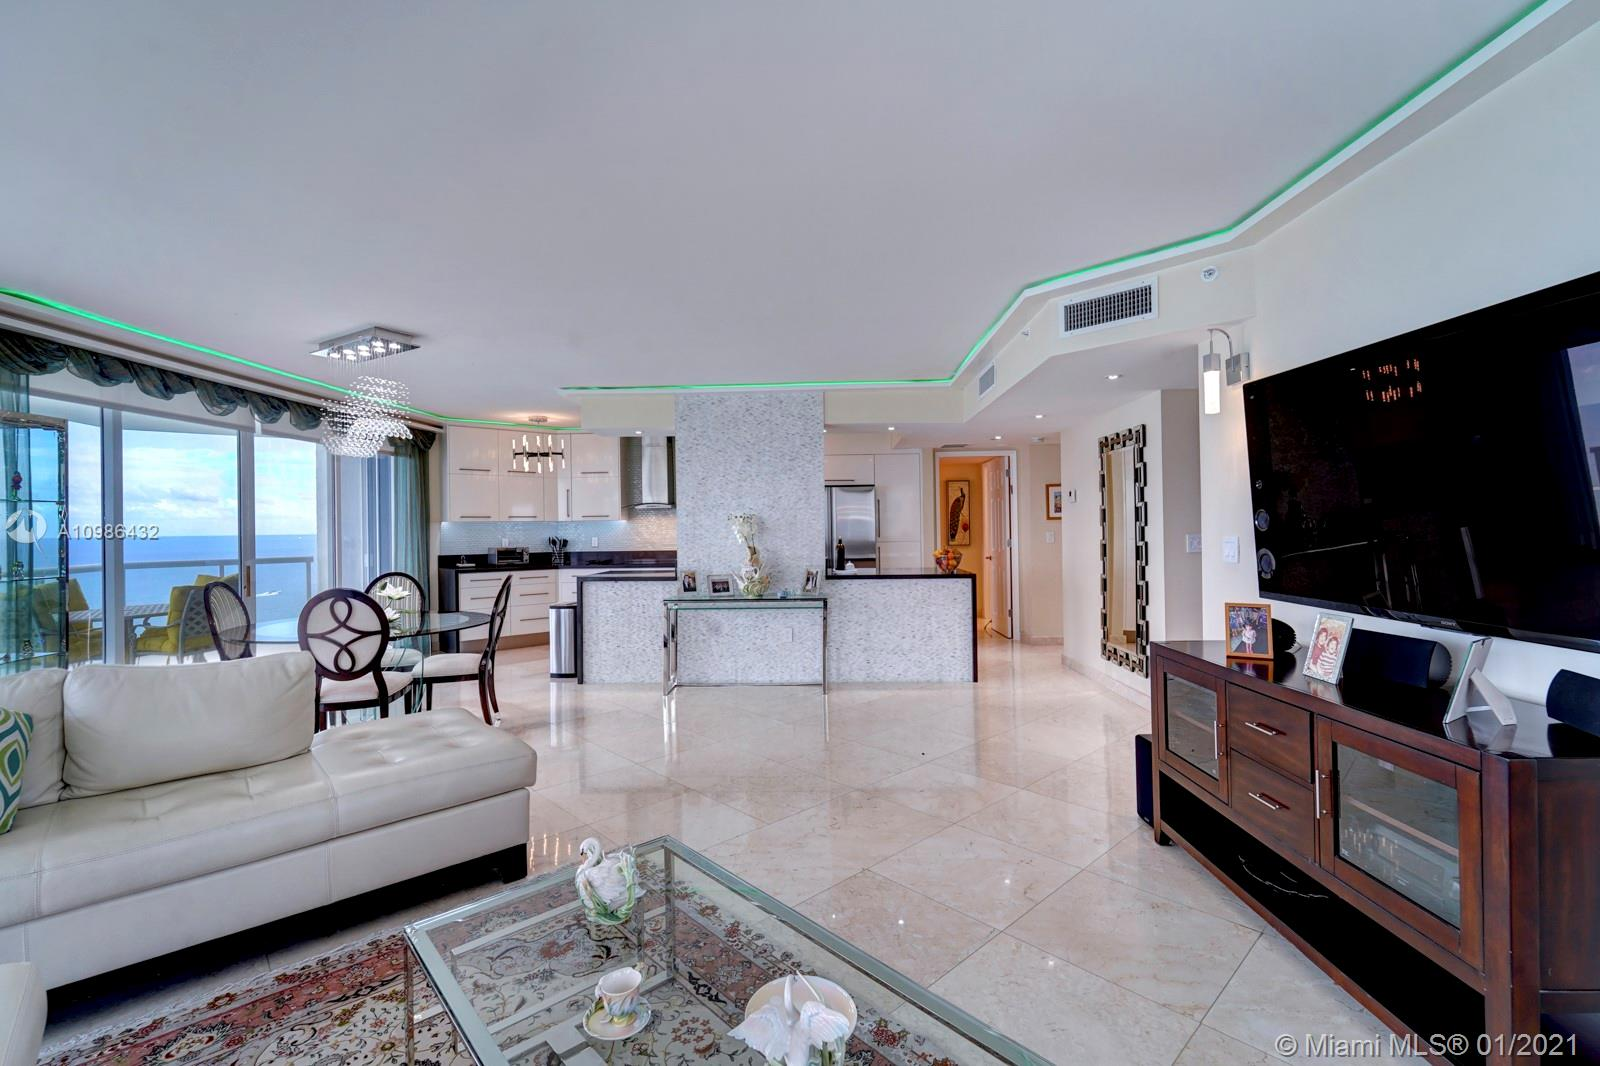 18671 Collins Ave # 2402, Sunny Isles Beach, Florida 33160, 3 Bedrooms Bedrooms, ,4 BathroomsBathrooms,Residential,For Sale,18671 Collins Ave # 2402,A10986432